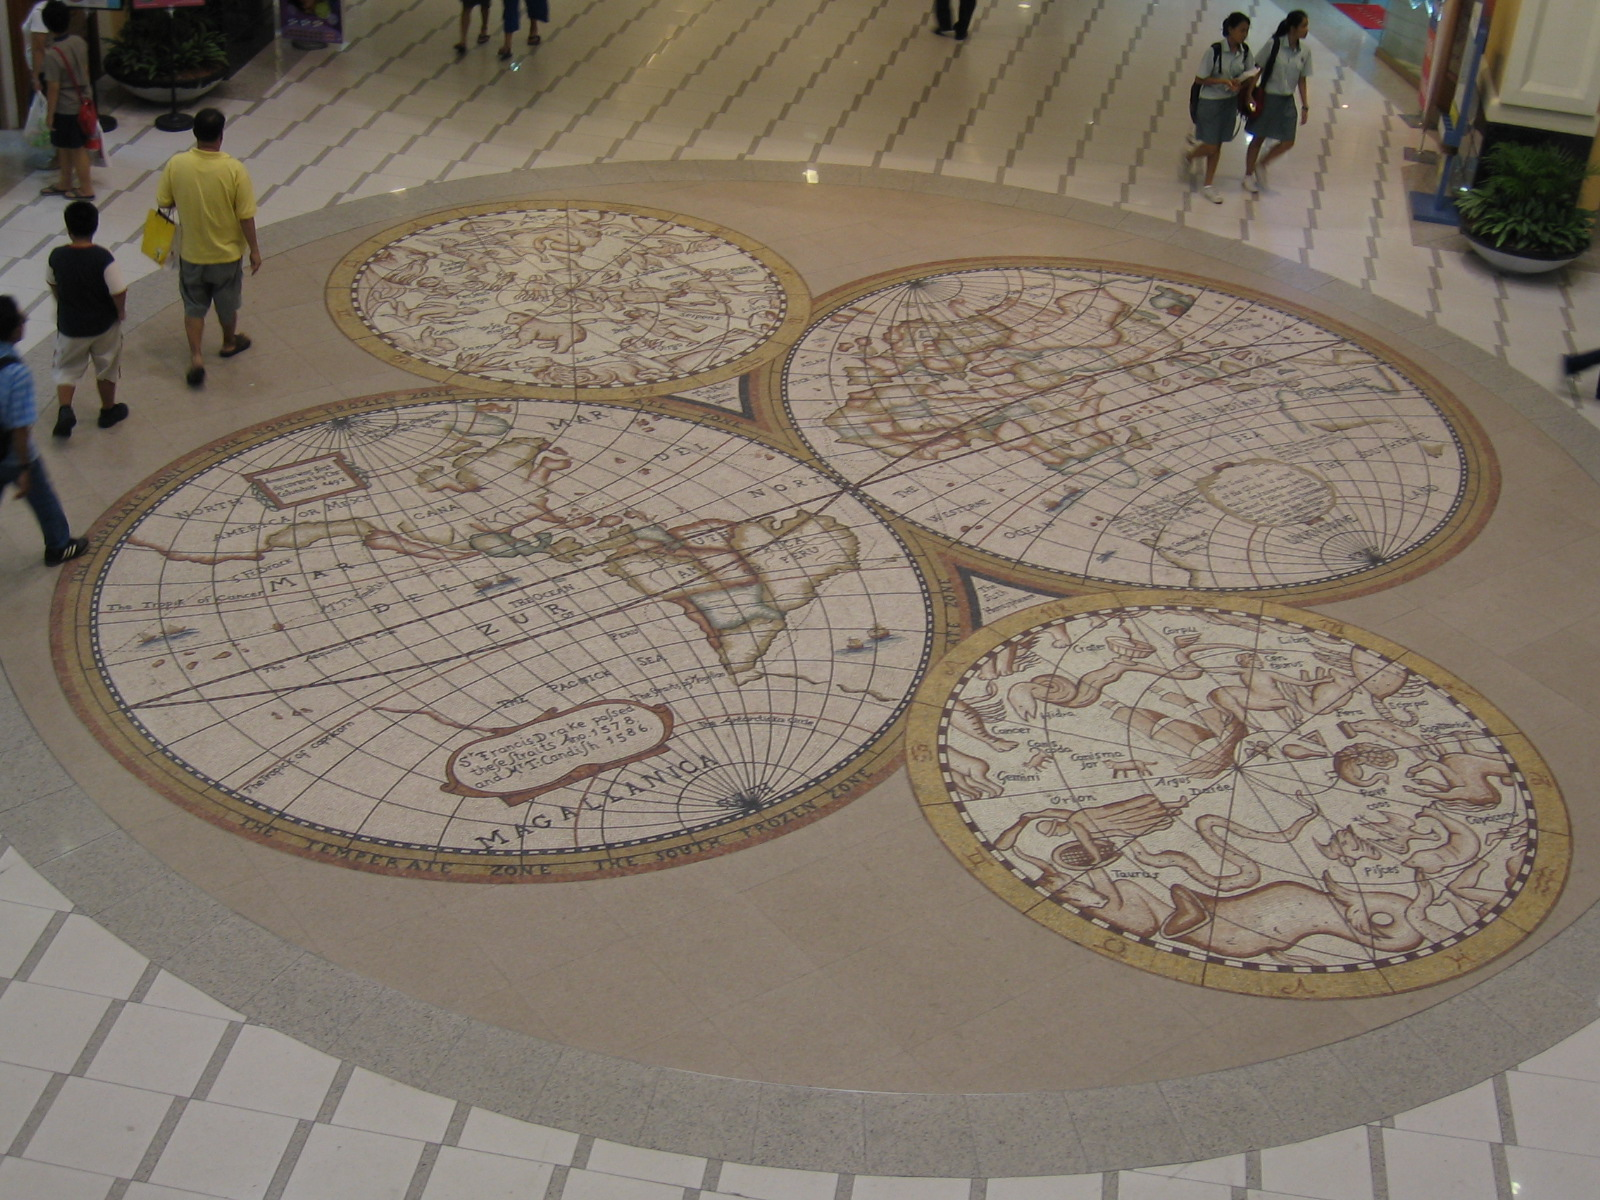 file floor mural at compass point jpg